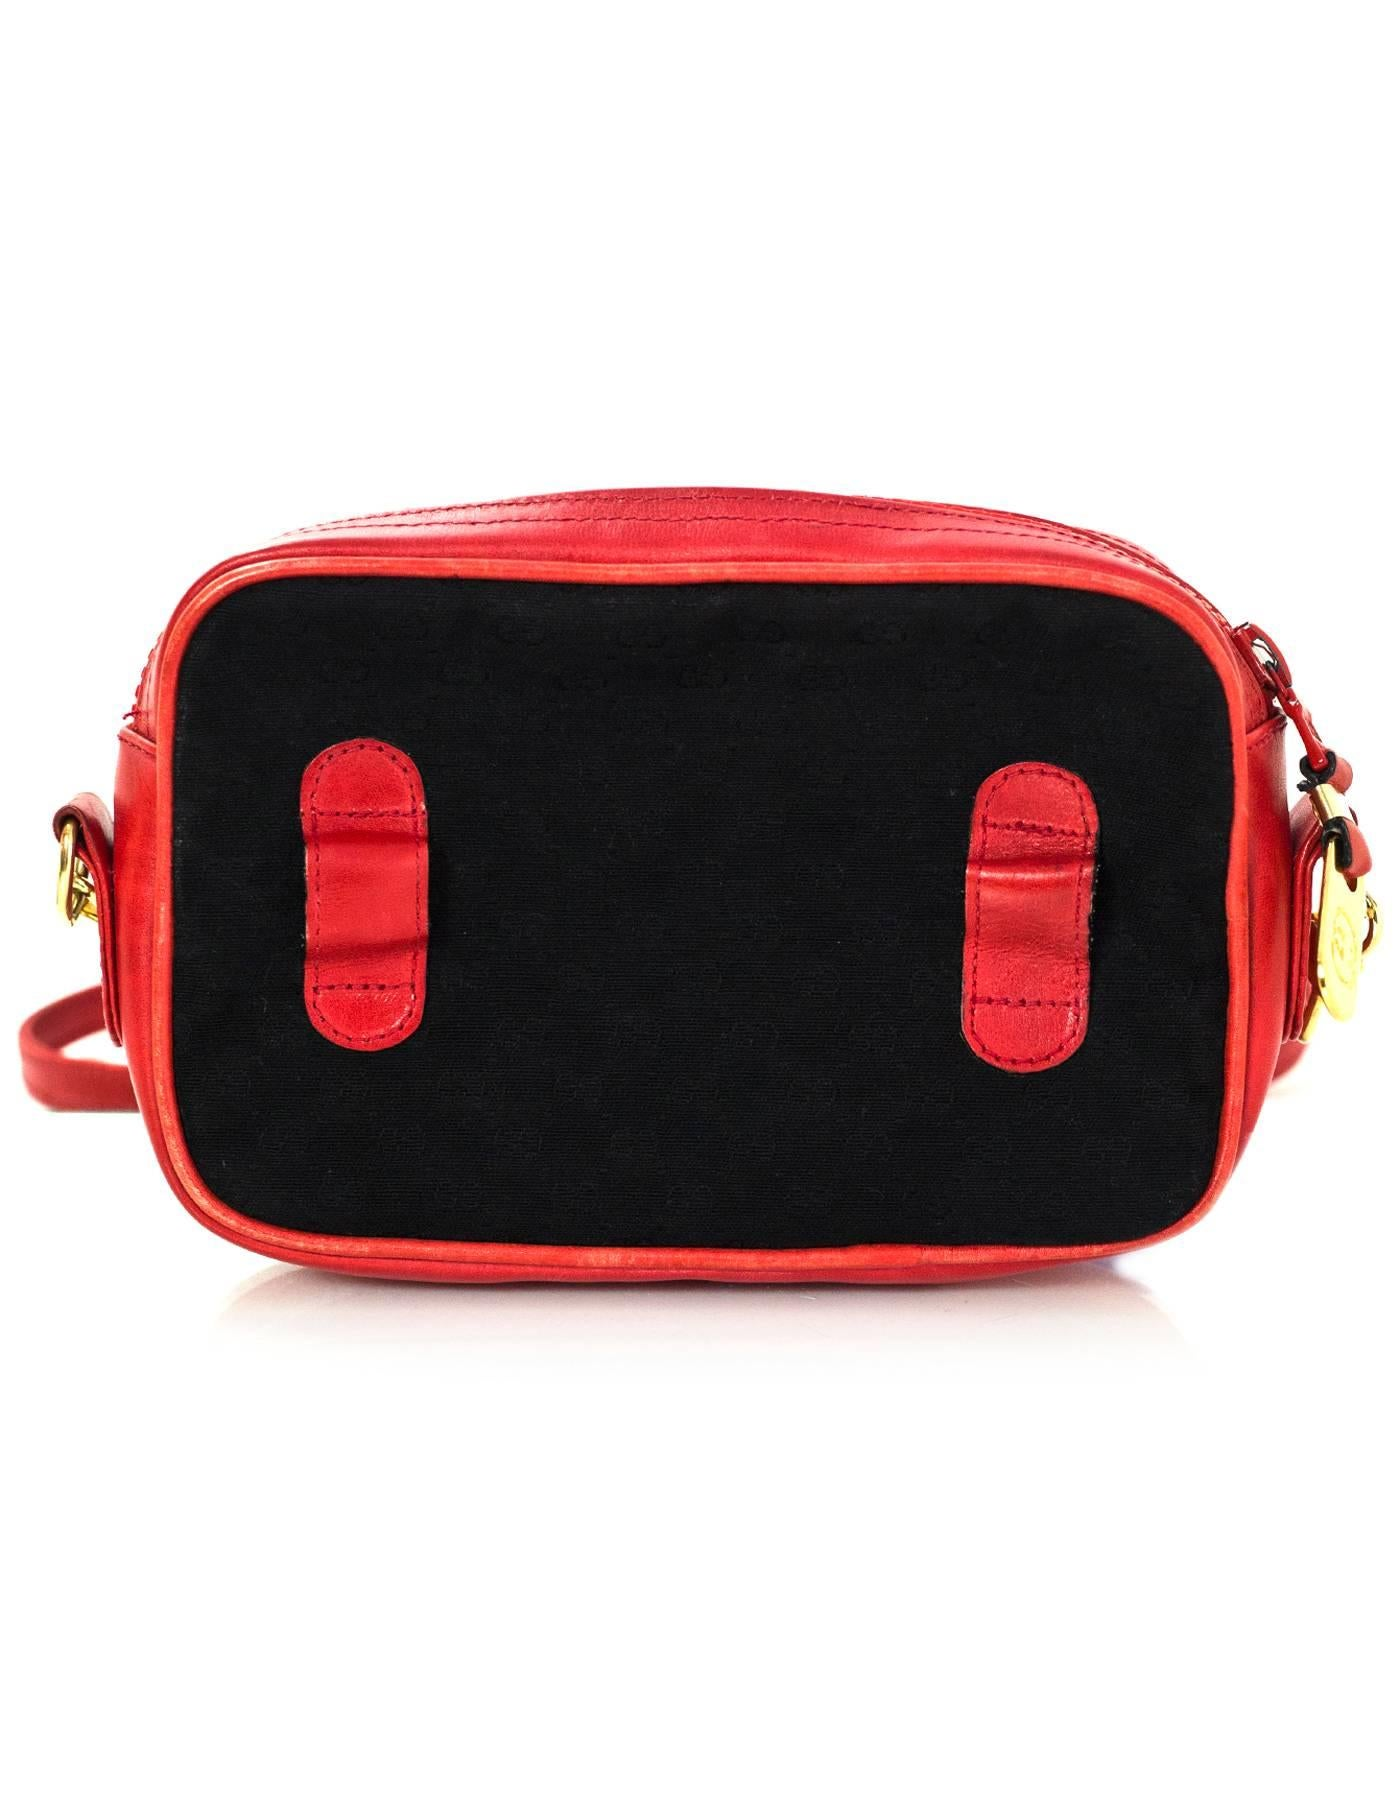 677f1a49160e Gucci Vintage Black and Red Monogram Golf Themed Crossbody/Waist Bag For  Sale at 1stdibs